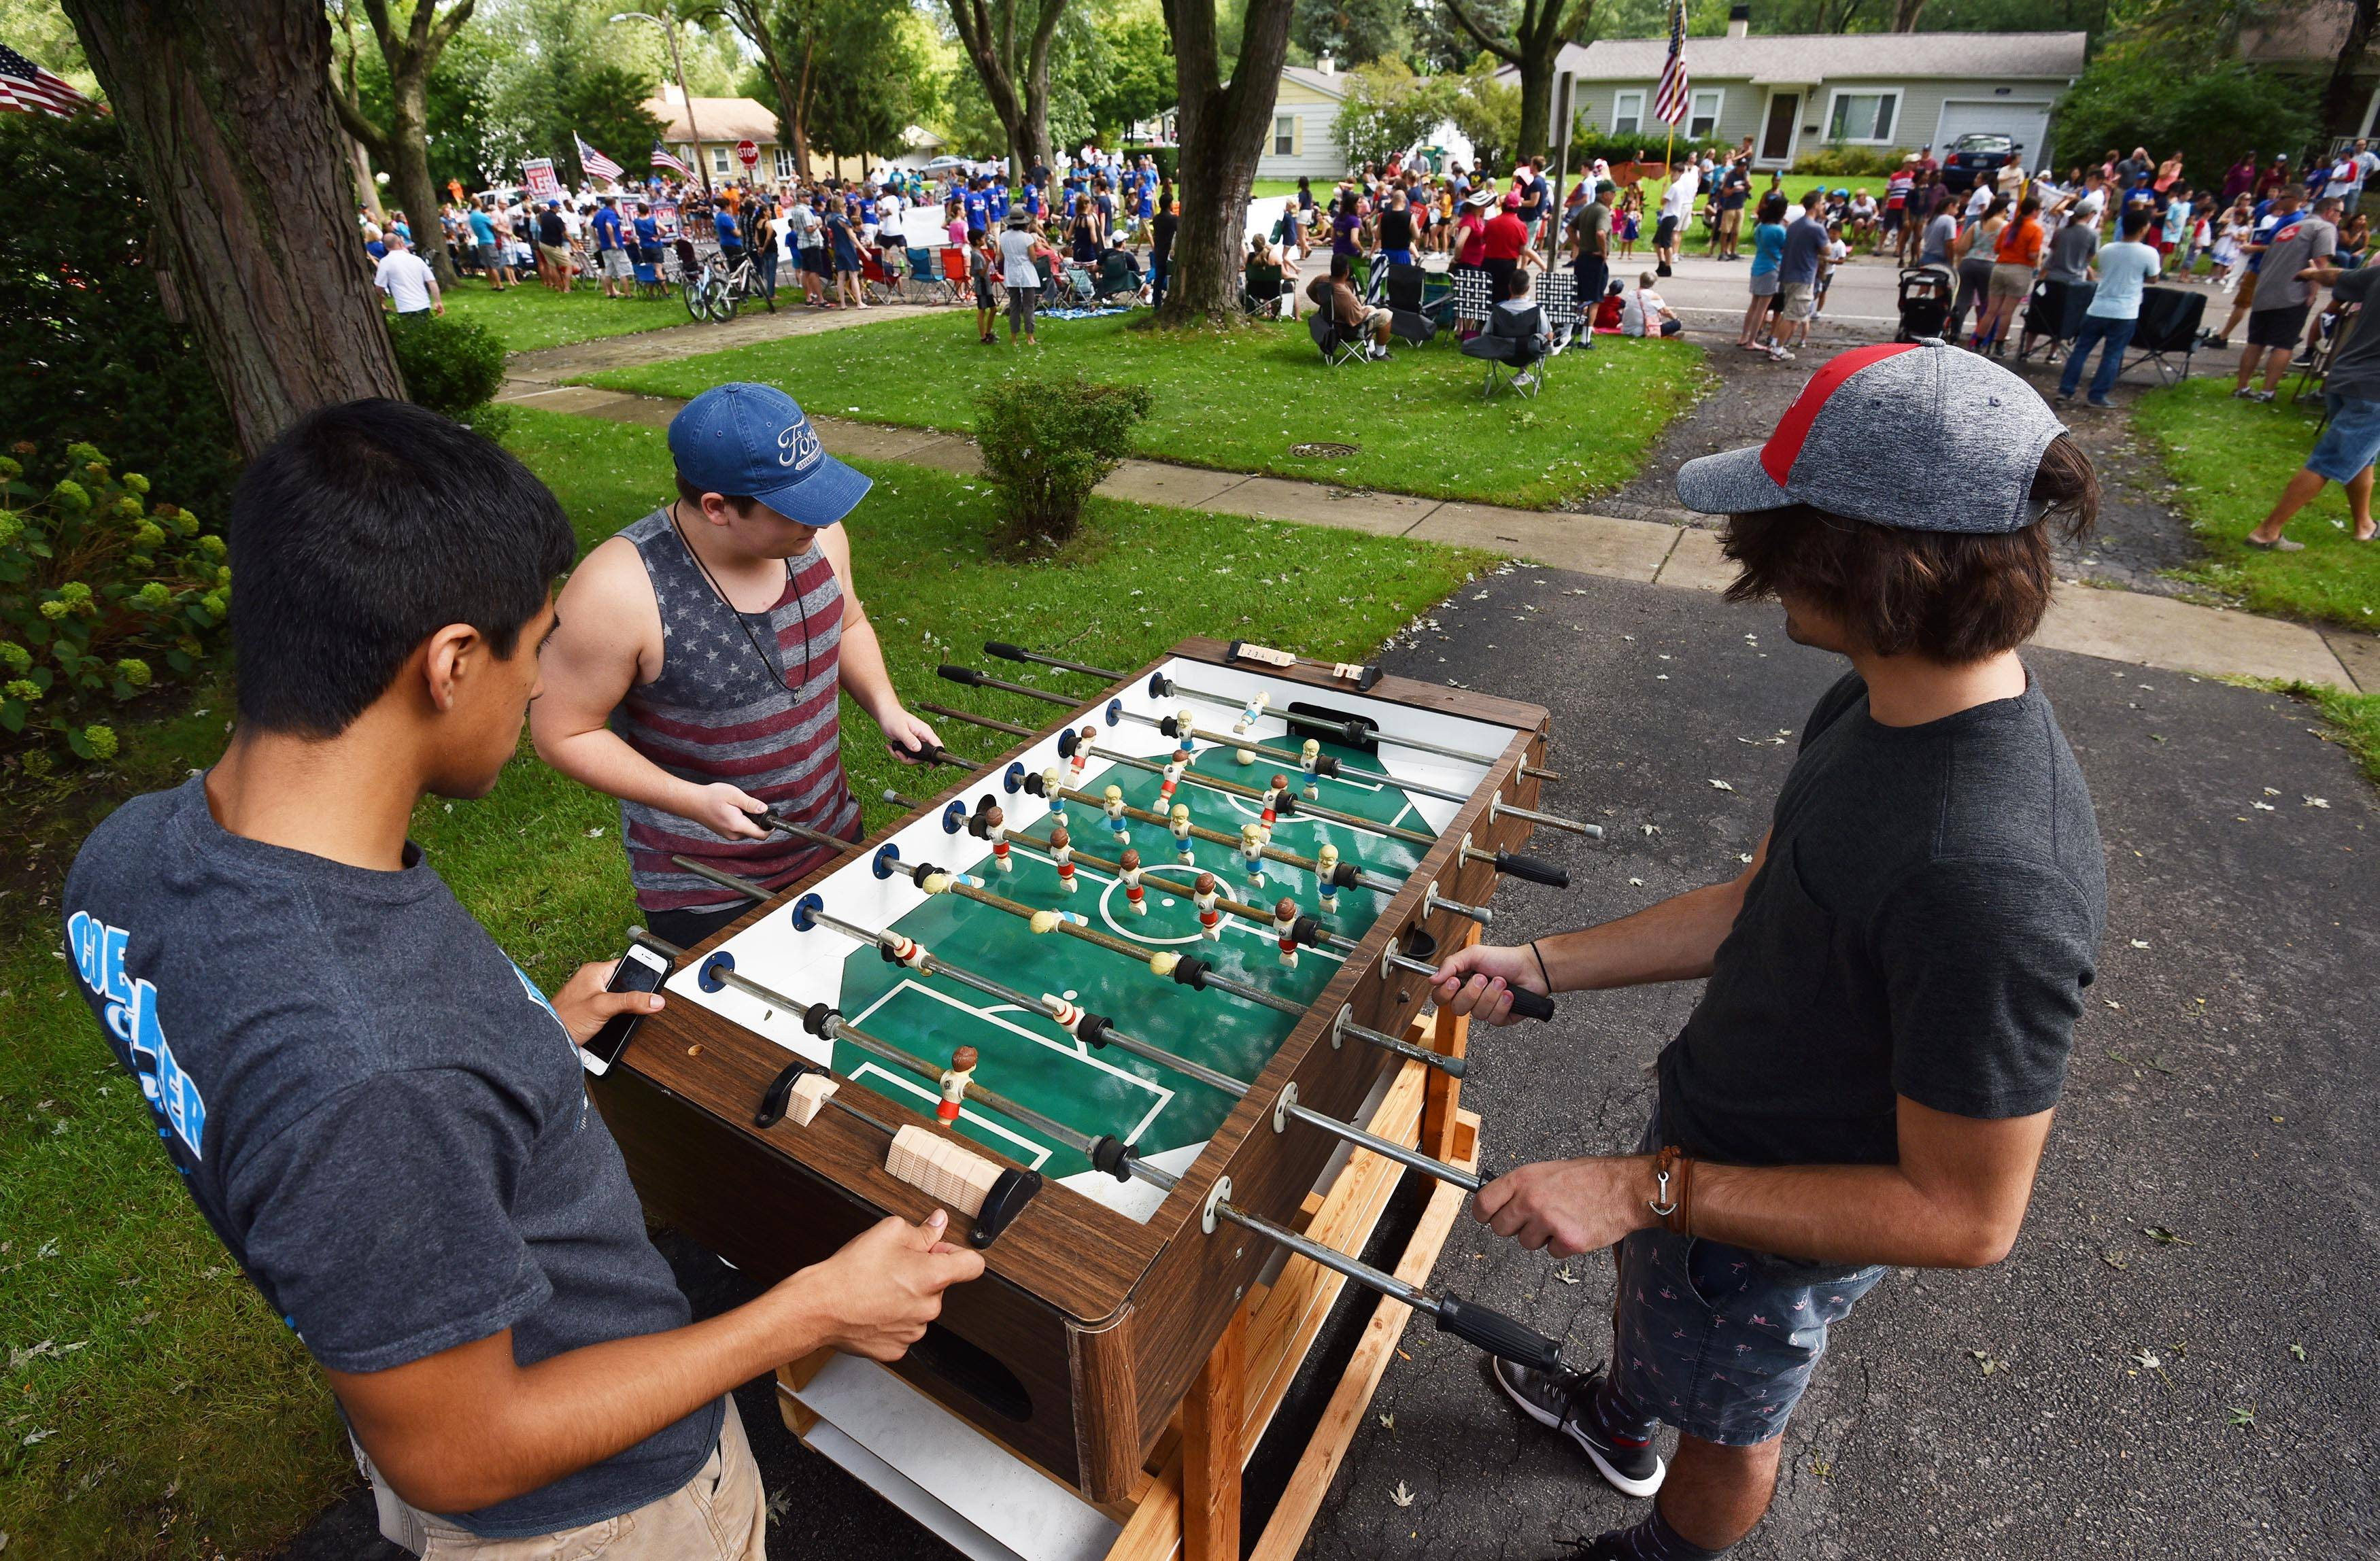 Erik Delgado, left, Connor Kotzenberg, middle, and Jared Cihler, right, play foosball in Kotzenberg's driveway Sunday morning as the Buffalo Grove Days parade ambles past along Raupp Boulevard.